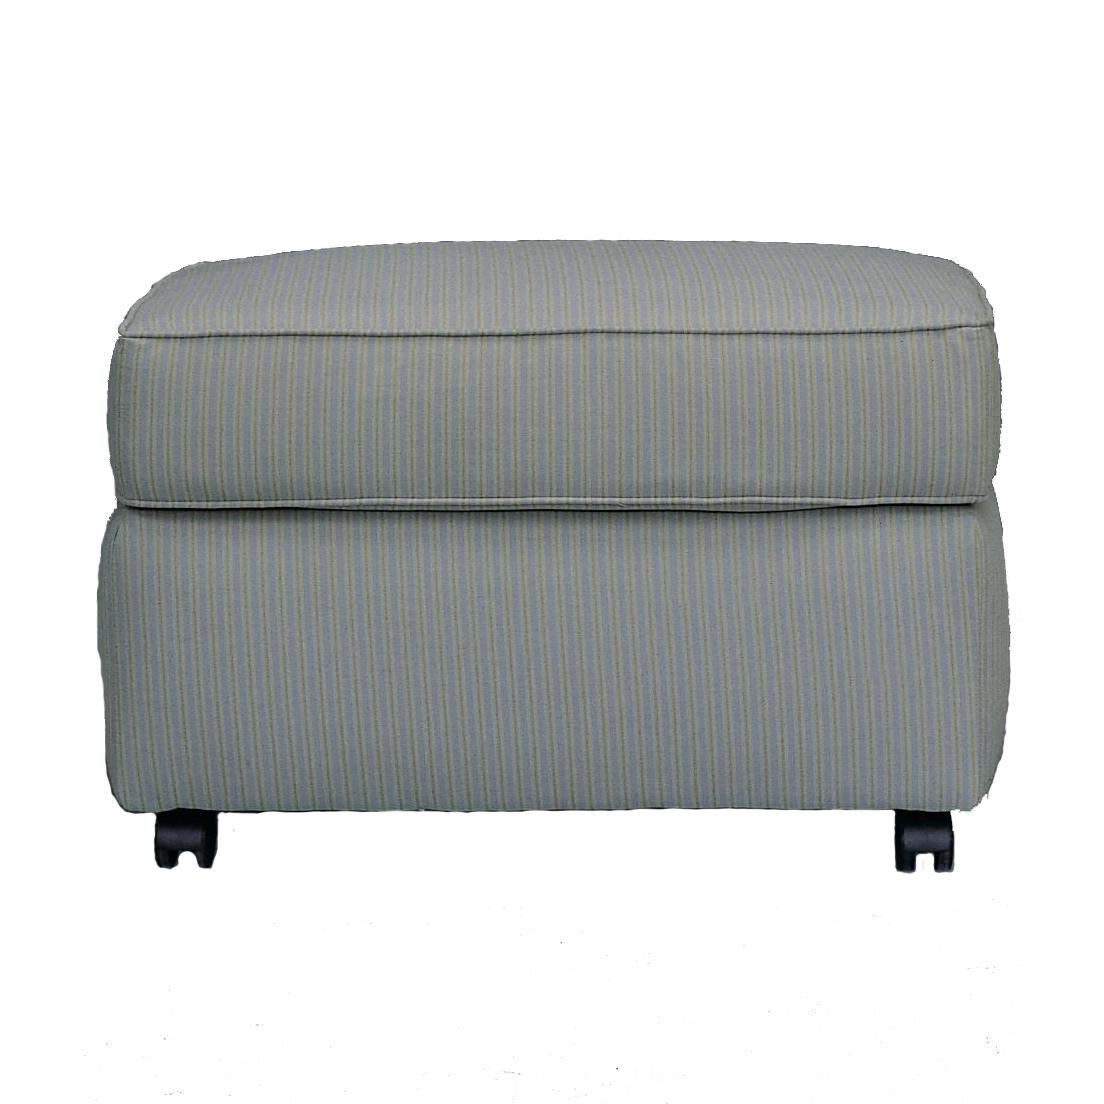 Brighton Ottoman by Klaussner at Stuckey Furniture